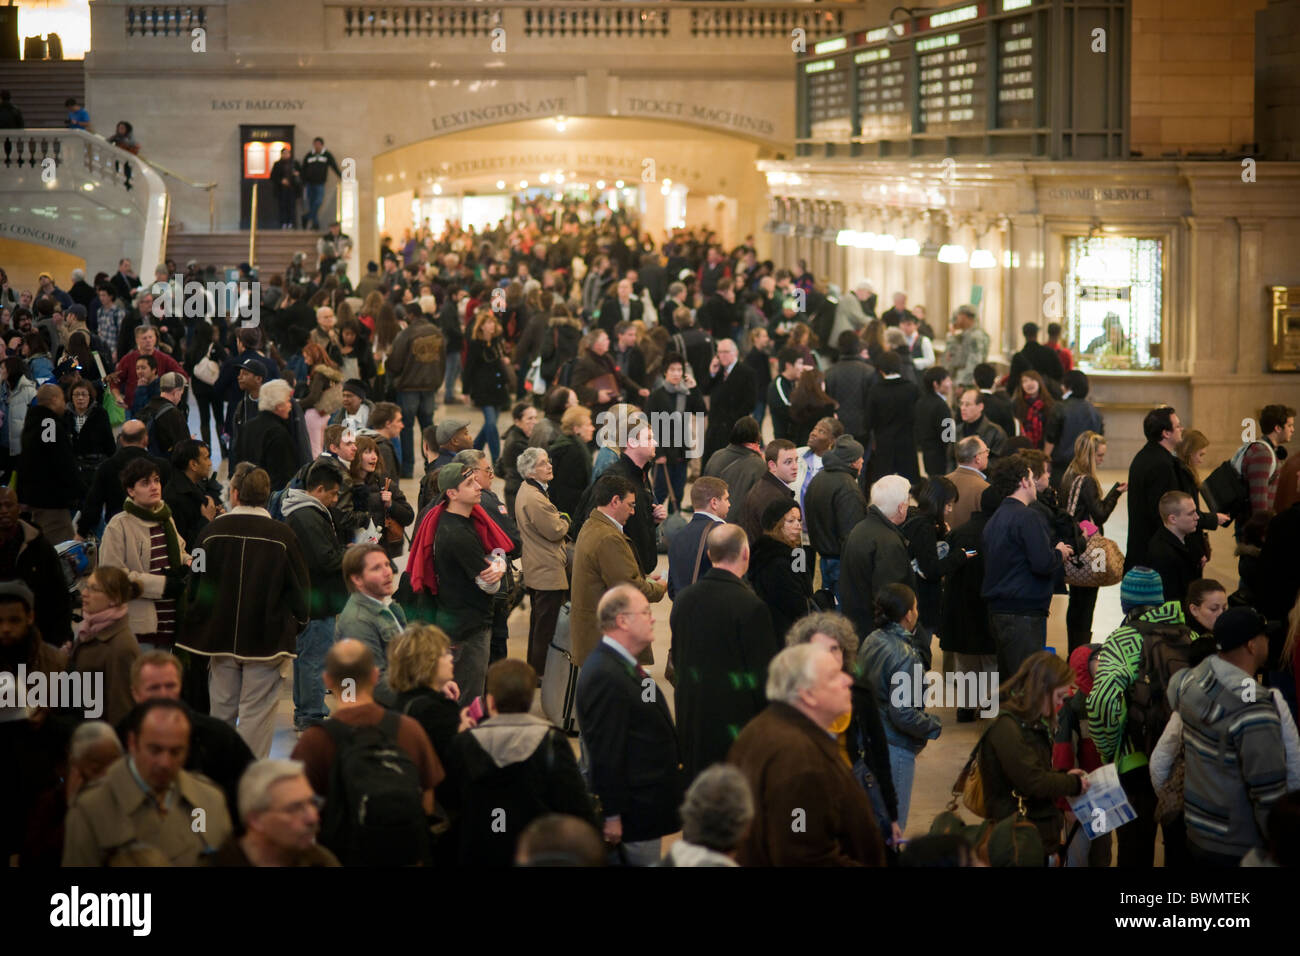 Travelers crowd Grand Central Terminal in New York for the Thanksgiving weekend exodus - Stock Image